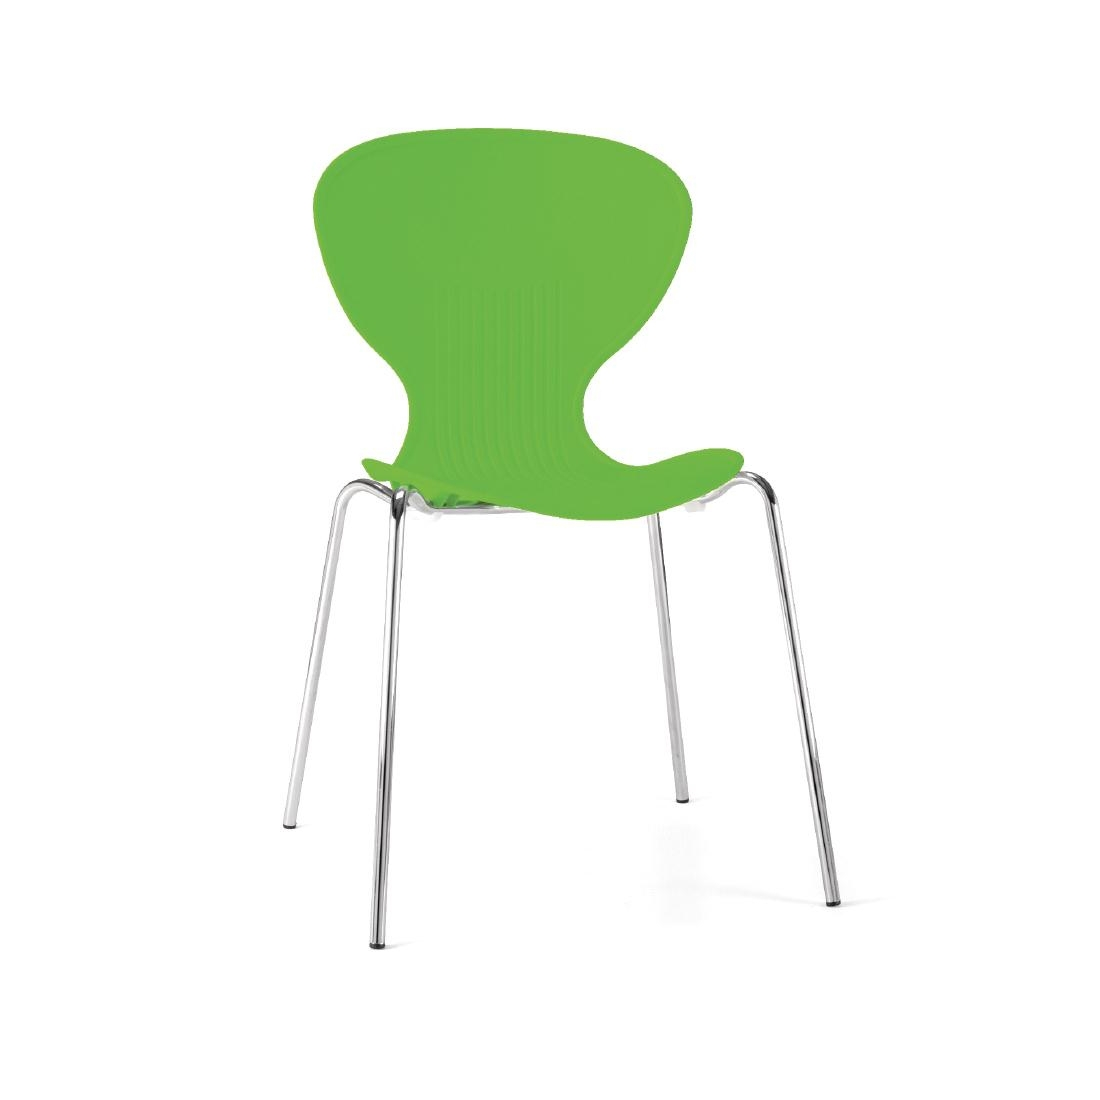 Colour Range Polypropylene Chairs - Bright Green